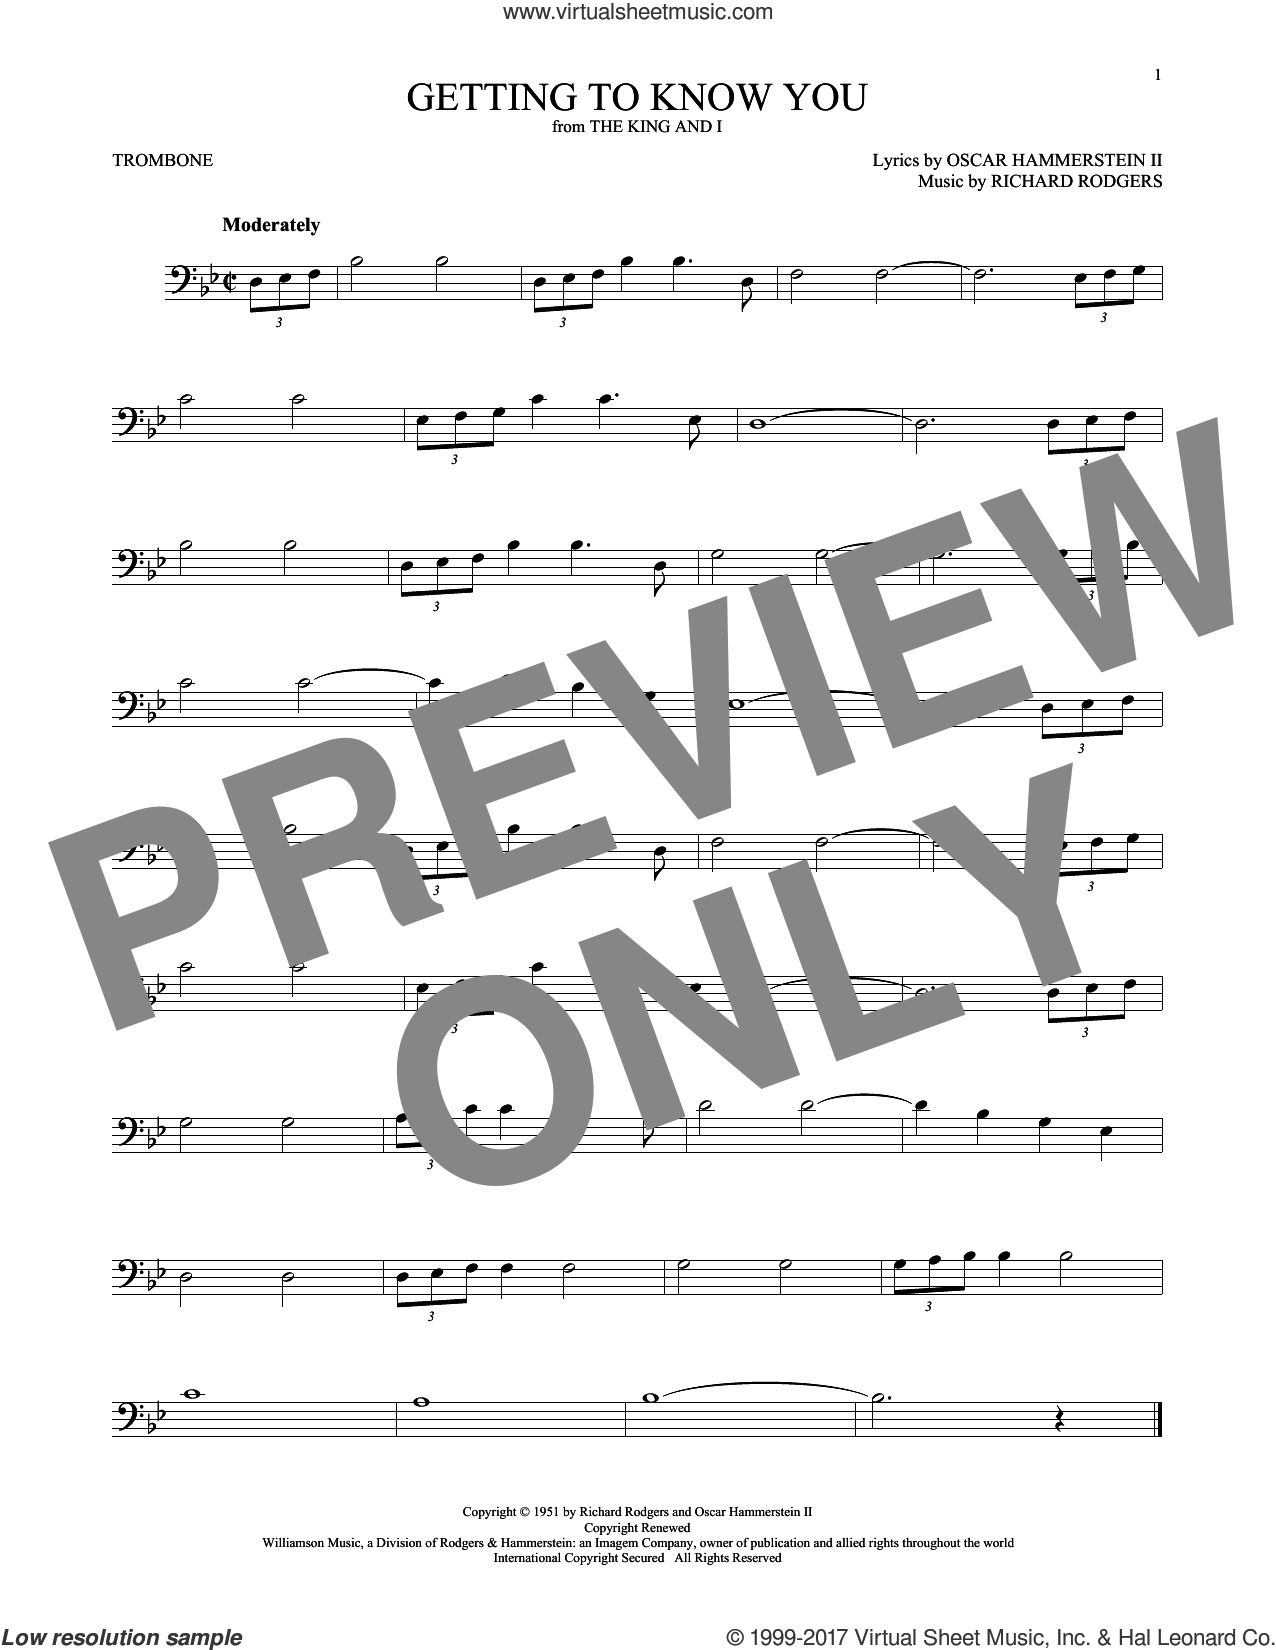 Getting To Know You sheet music for trombone solo by Rodgers & Hammerstein, Oscar II Hammerstein and Richard Rodgers, intermediate skill level